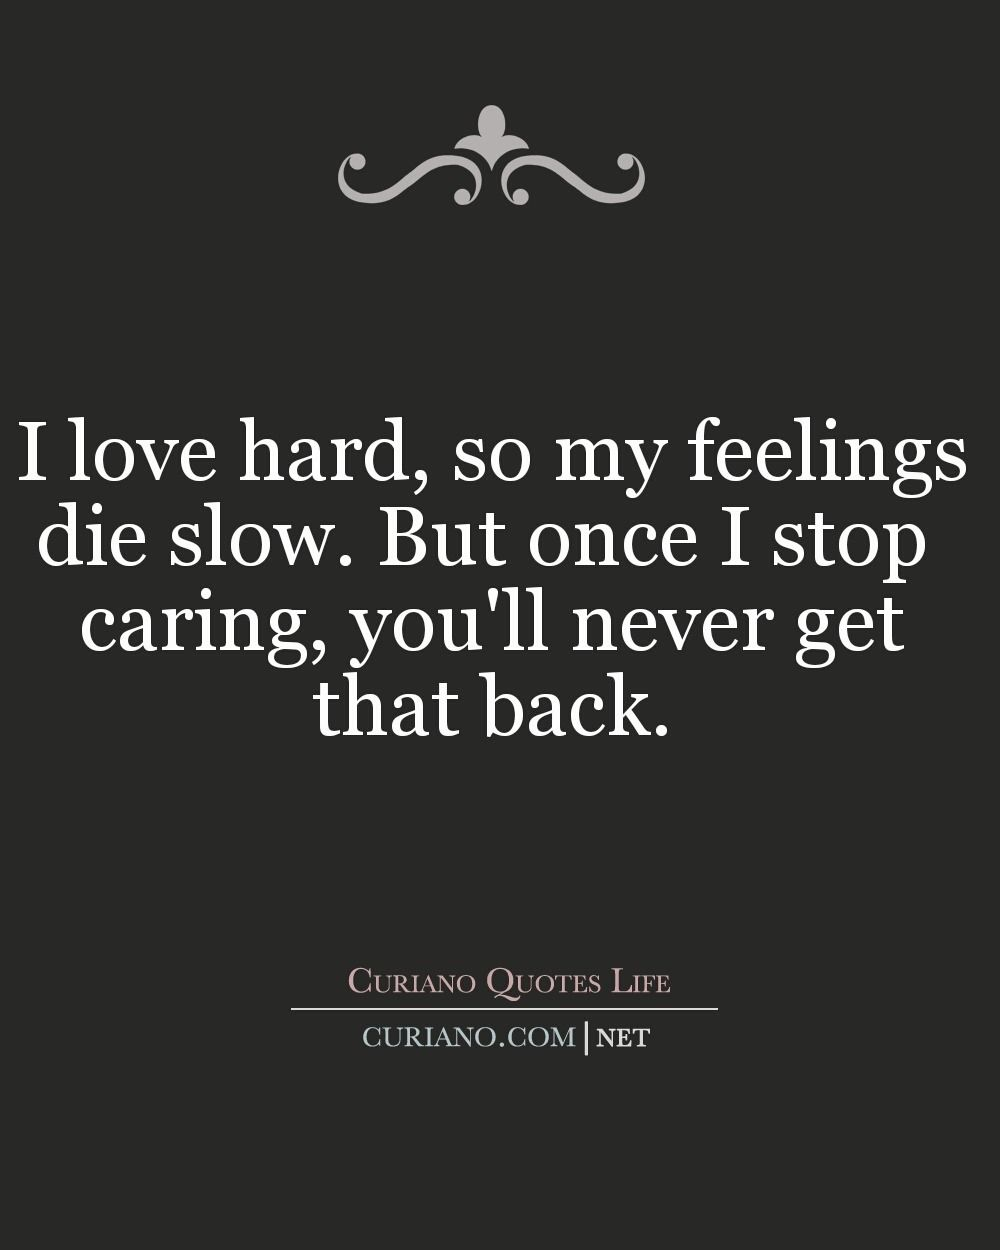 This Blog Curiano Quotes Life Shows Quotes Best Life Quote Life Quotes Love Quotes Moving On Life Quotes Done Quotes Wisdom Quotes